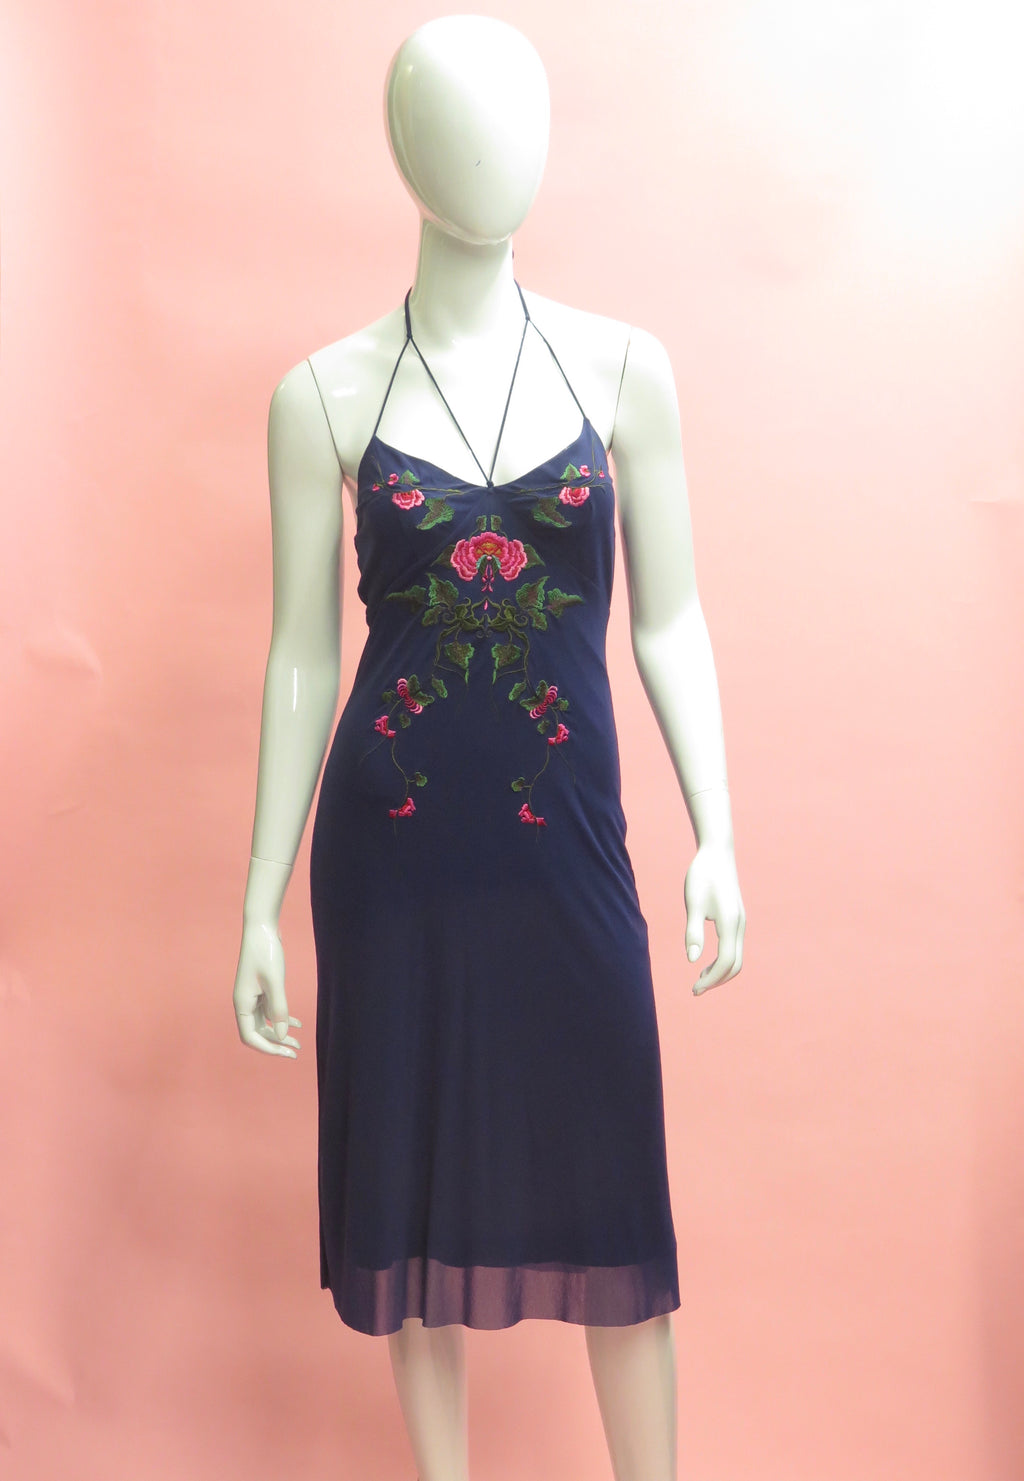 1990's Vivienne Tam Floral Embroidered Mesh Halter Dress